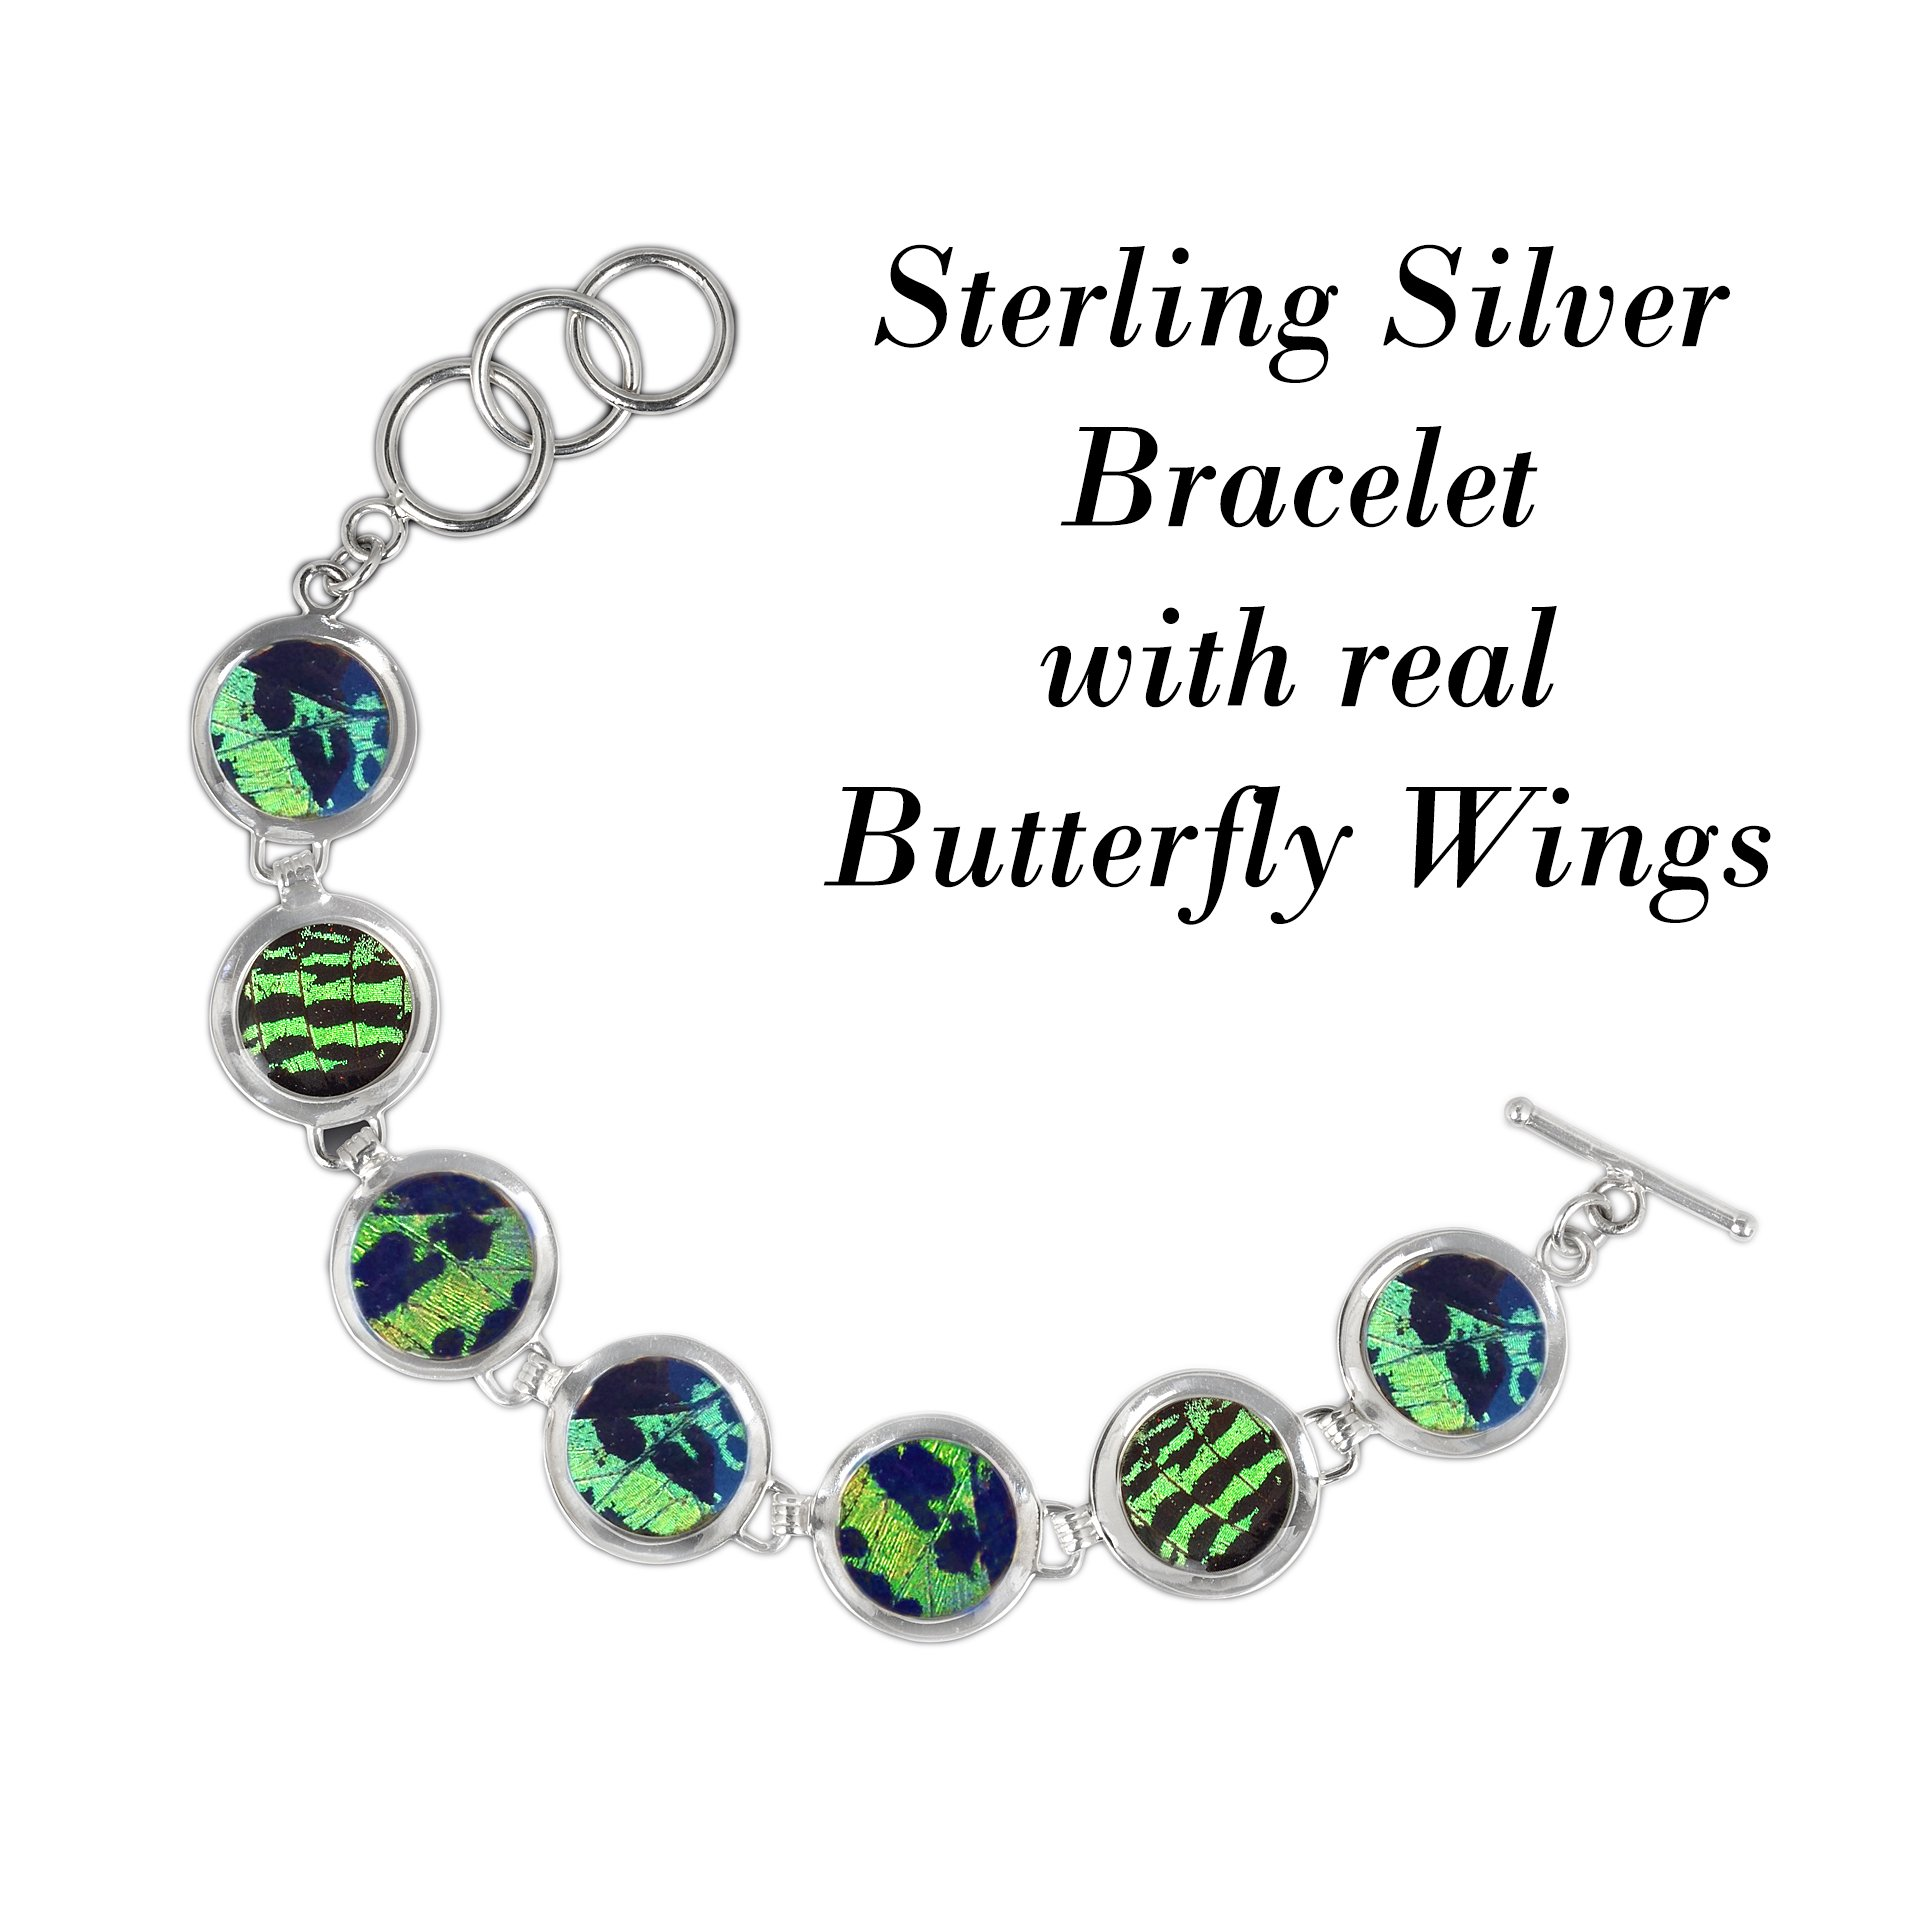 Real Butterfly Sterling Silver Bracelet - Natural, Colorful, Recycled, Sustainable, Green